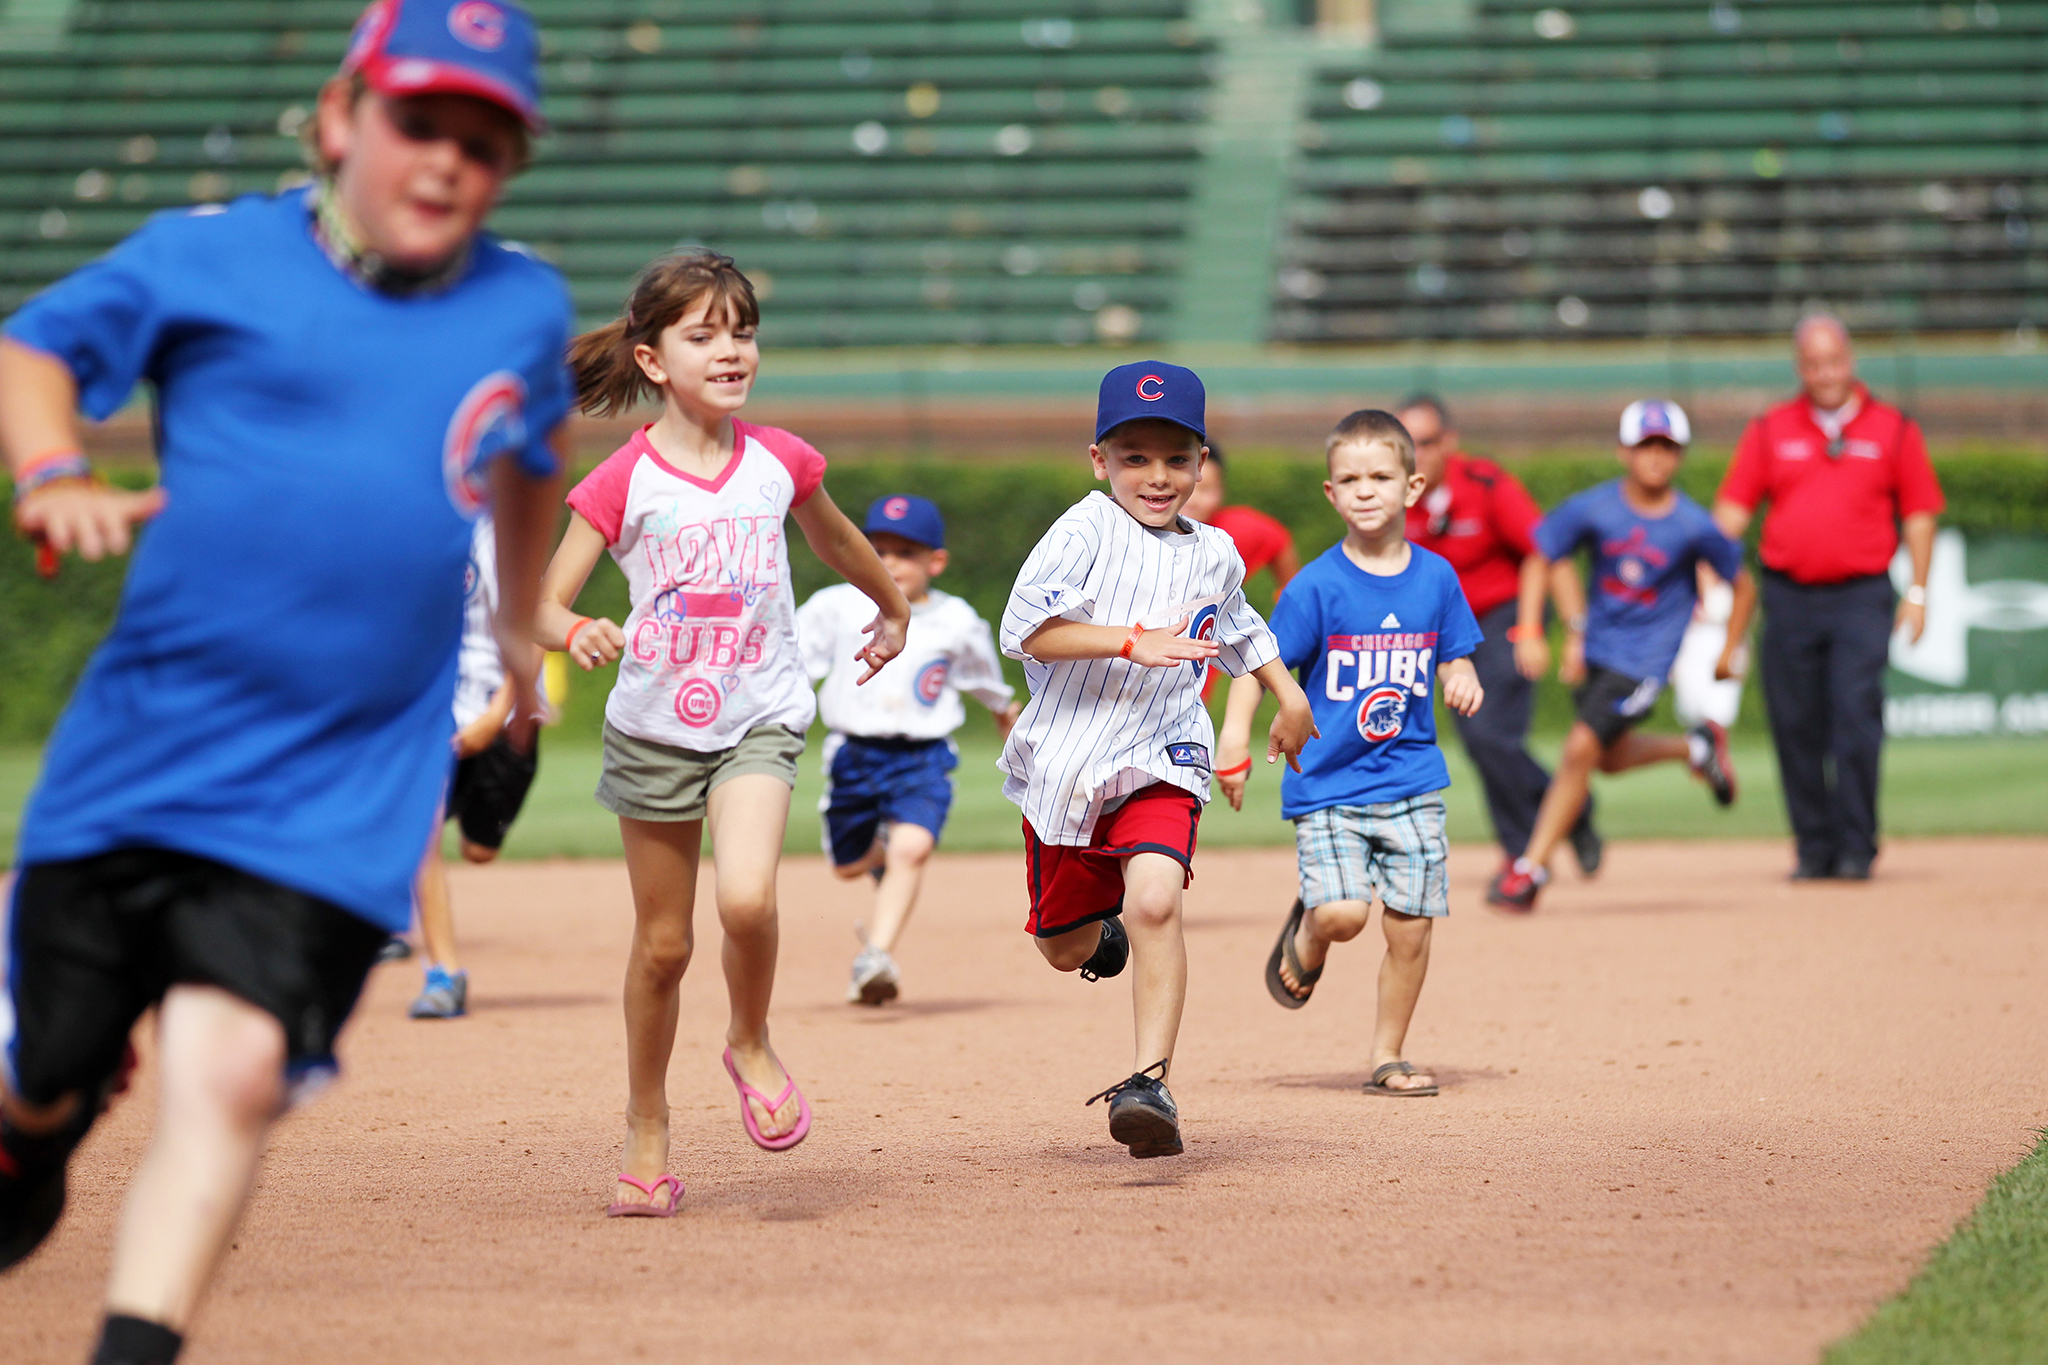 Run the bases at Wrigley Field